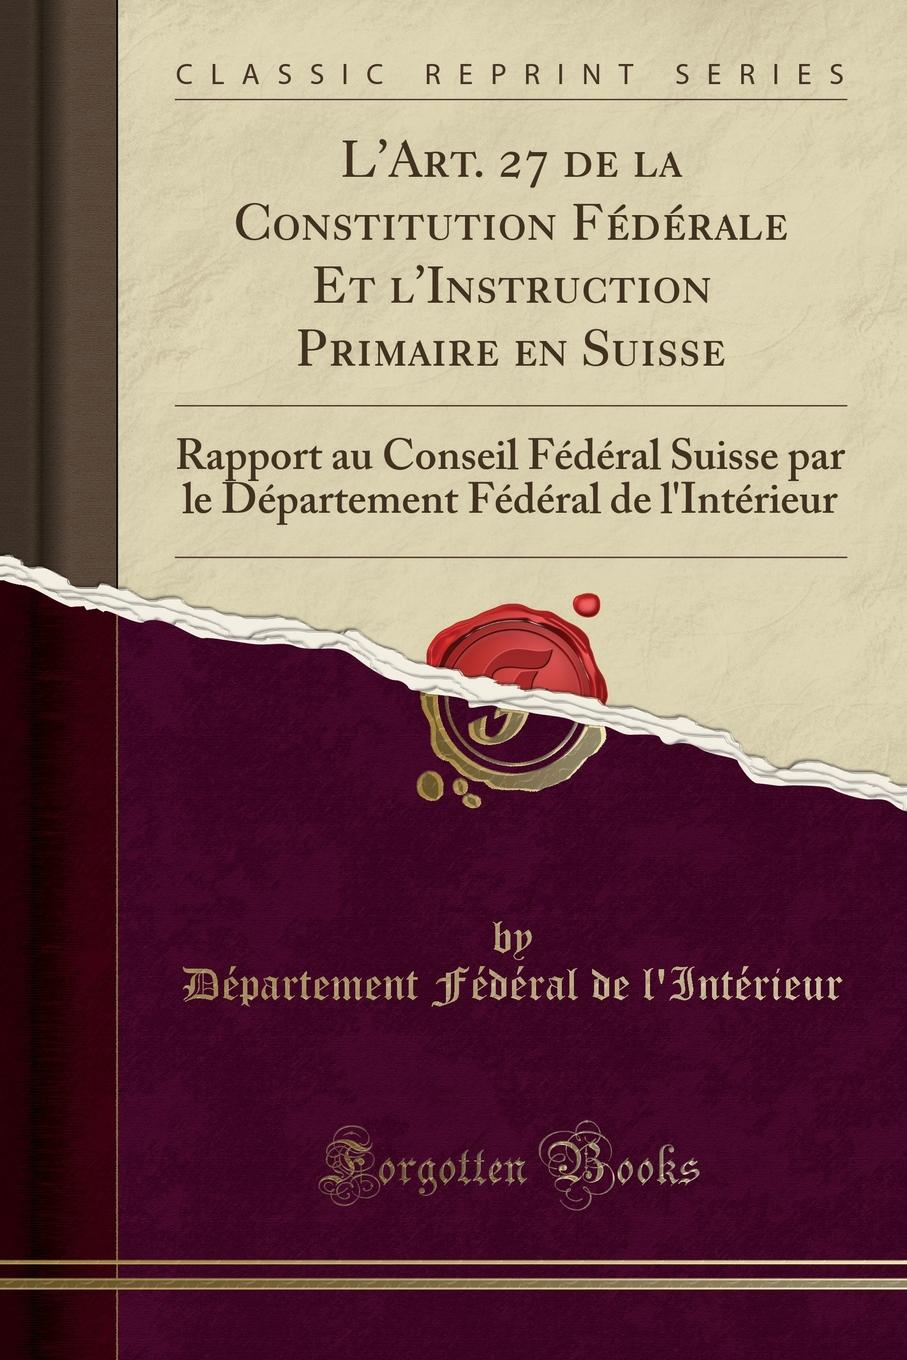 L.Art. 27 de la Constitution Federale Et l.Instruction Primaire en Suisse. Rapport au Conseil Federal Suisse par le Departement Federal de l.Interieur (Classic Reprint) (8673)